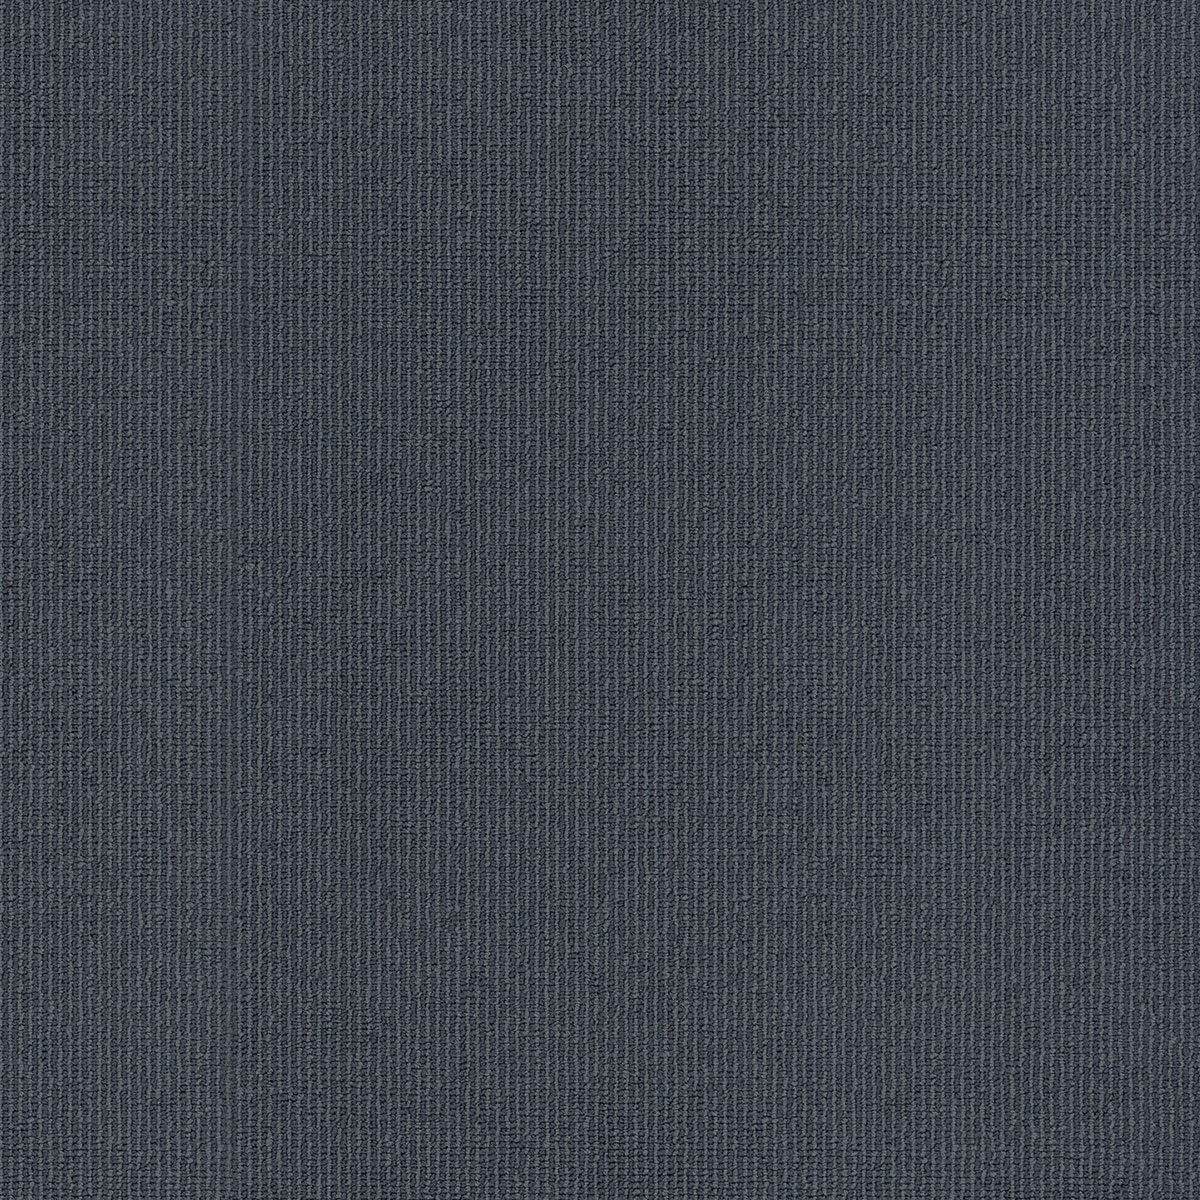 Amtico International: Elemental Solids Blue Grey